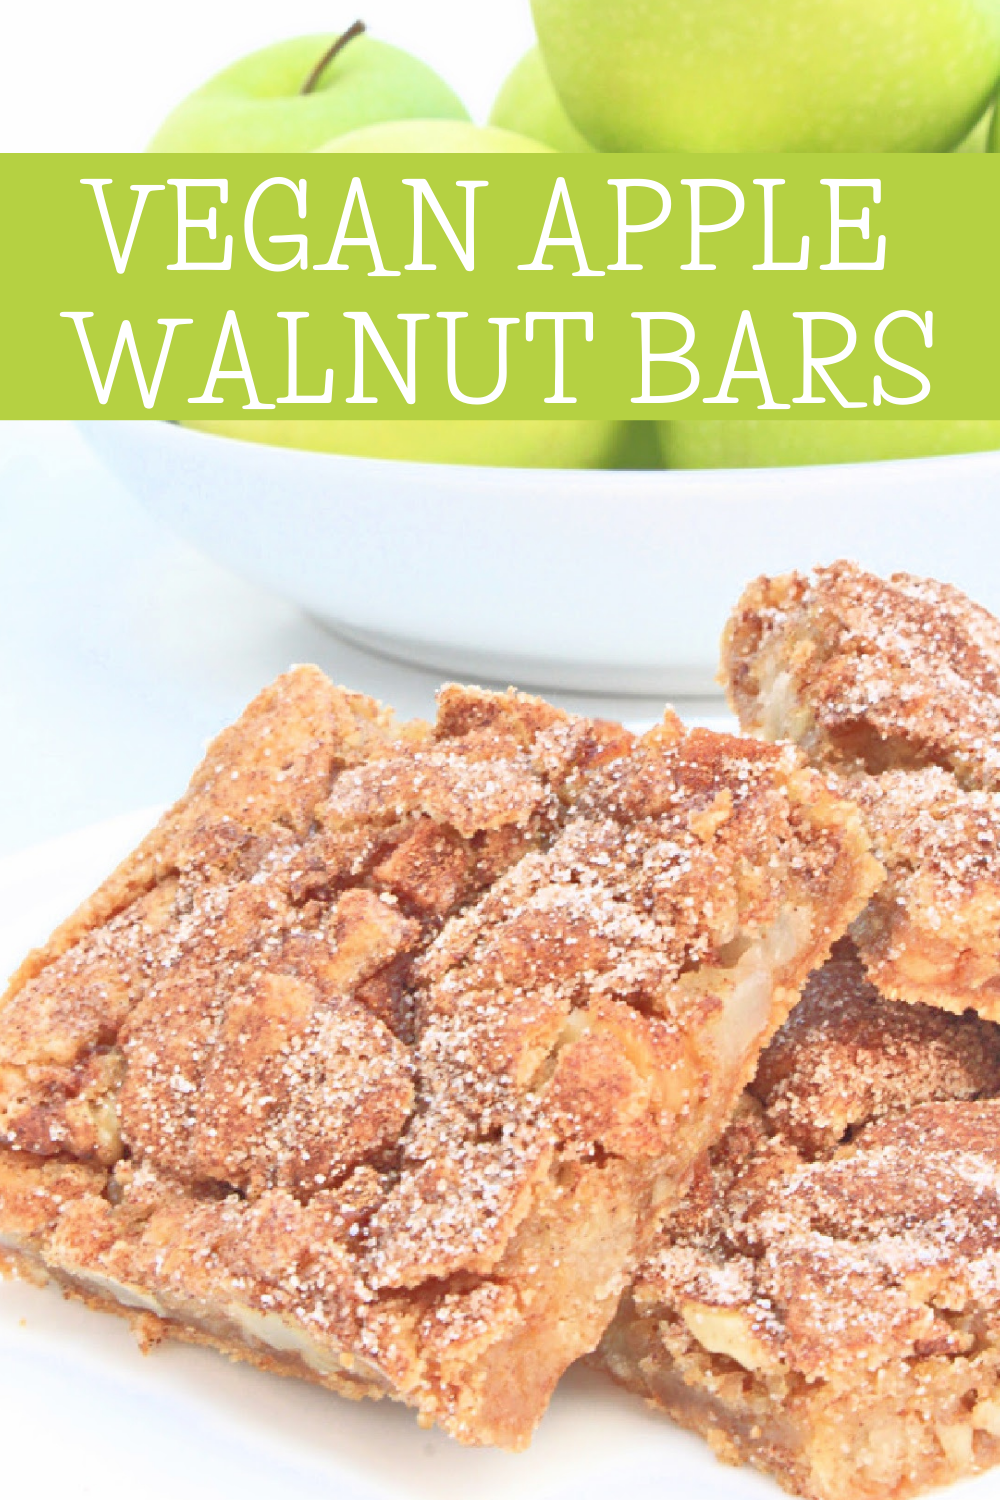 Apple Walnut Bars ~ These dairy-free bars are quick and easy to make. A delicious and fragrant fall dessert or afternoon snack! via @thiswifecooks